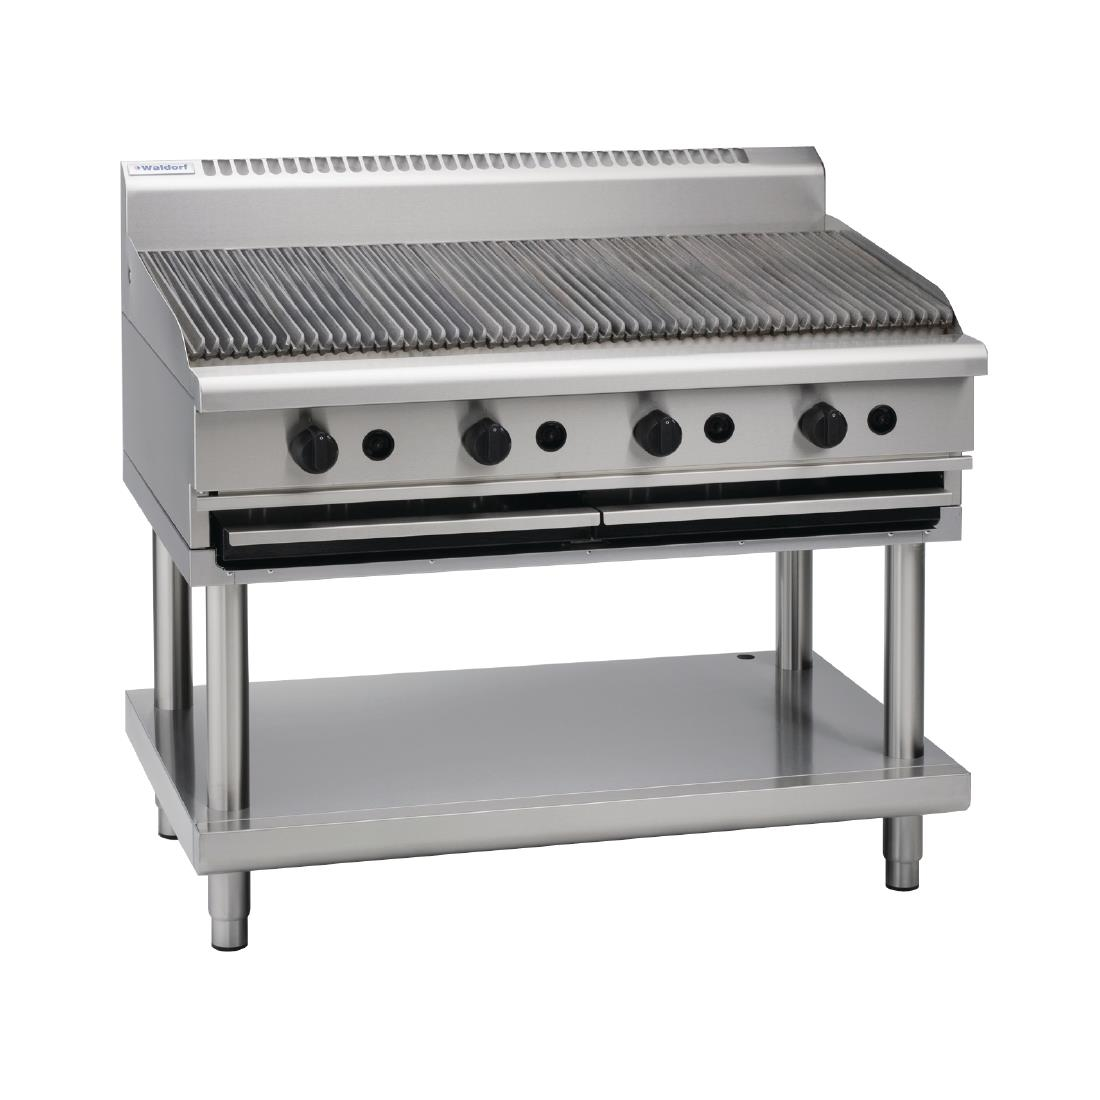 Waldorf by Moffat 1200mm Chargrill Natural Gas CH8120G-LS